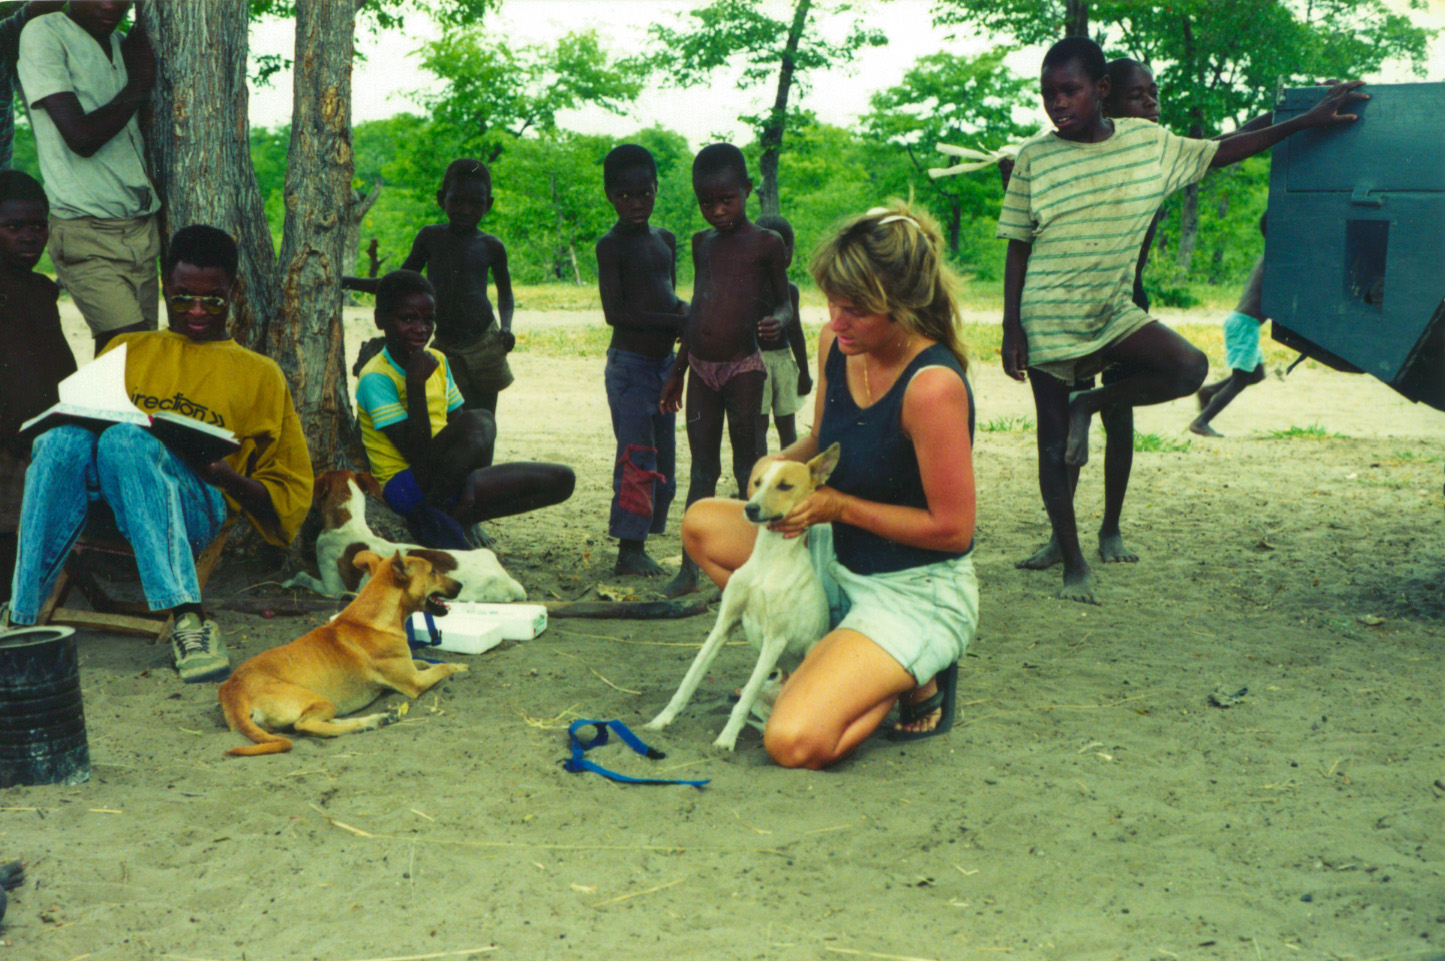 Kathleen Alexander examined how human behavior influences disease transmission between domestic and wild dogs in Africa.